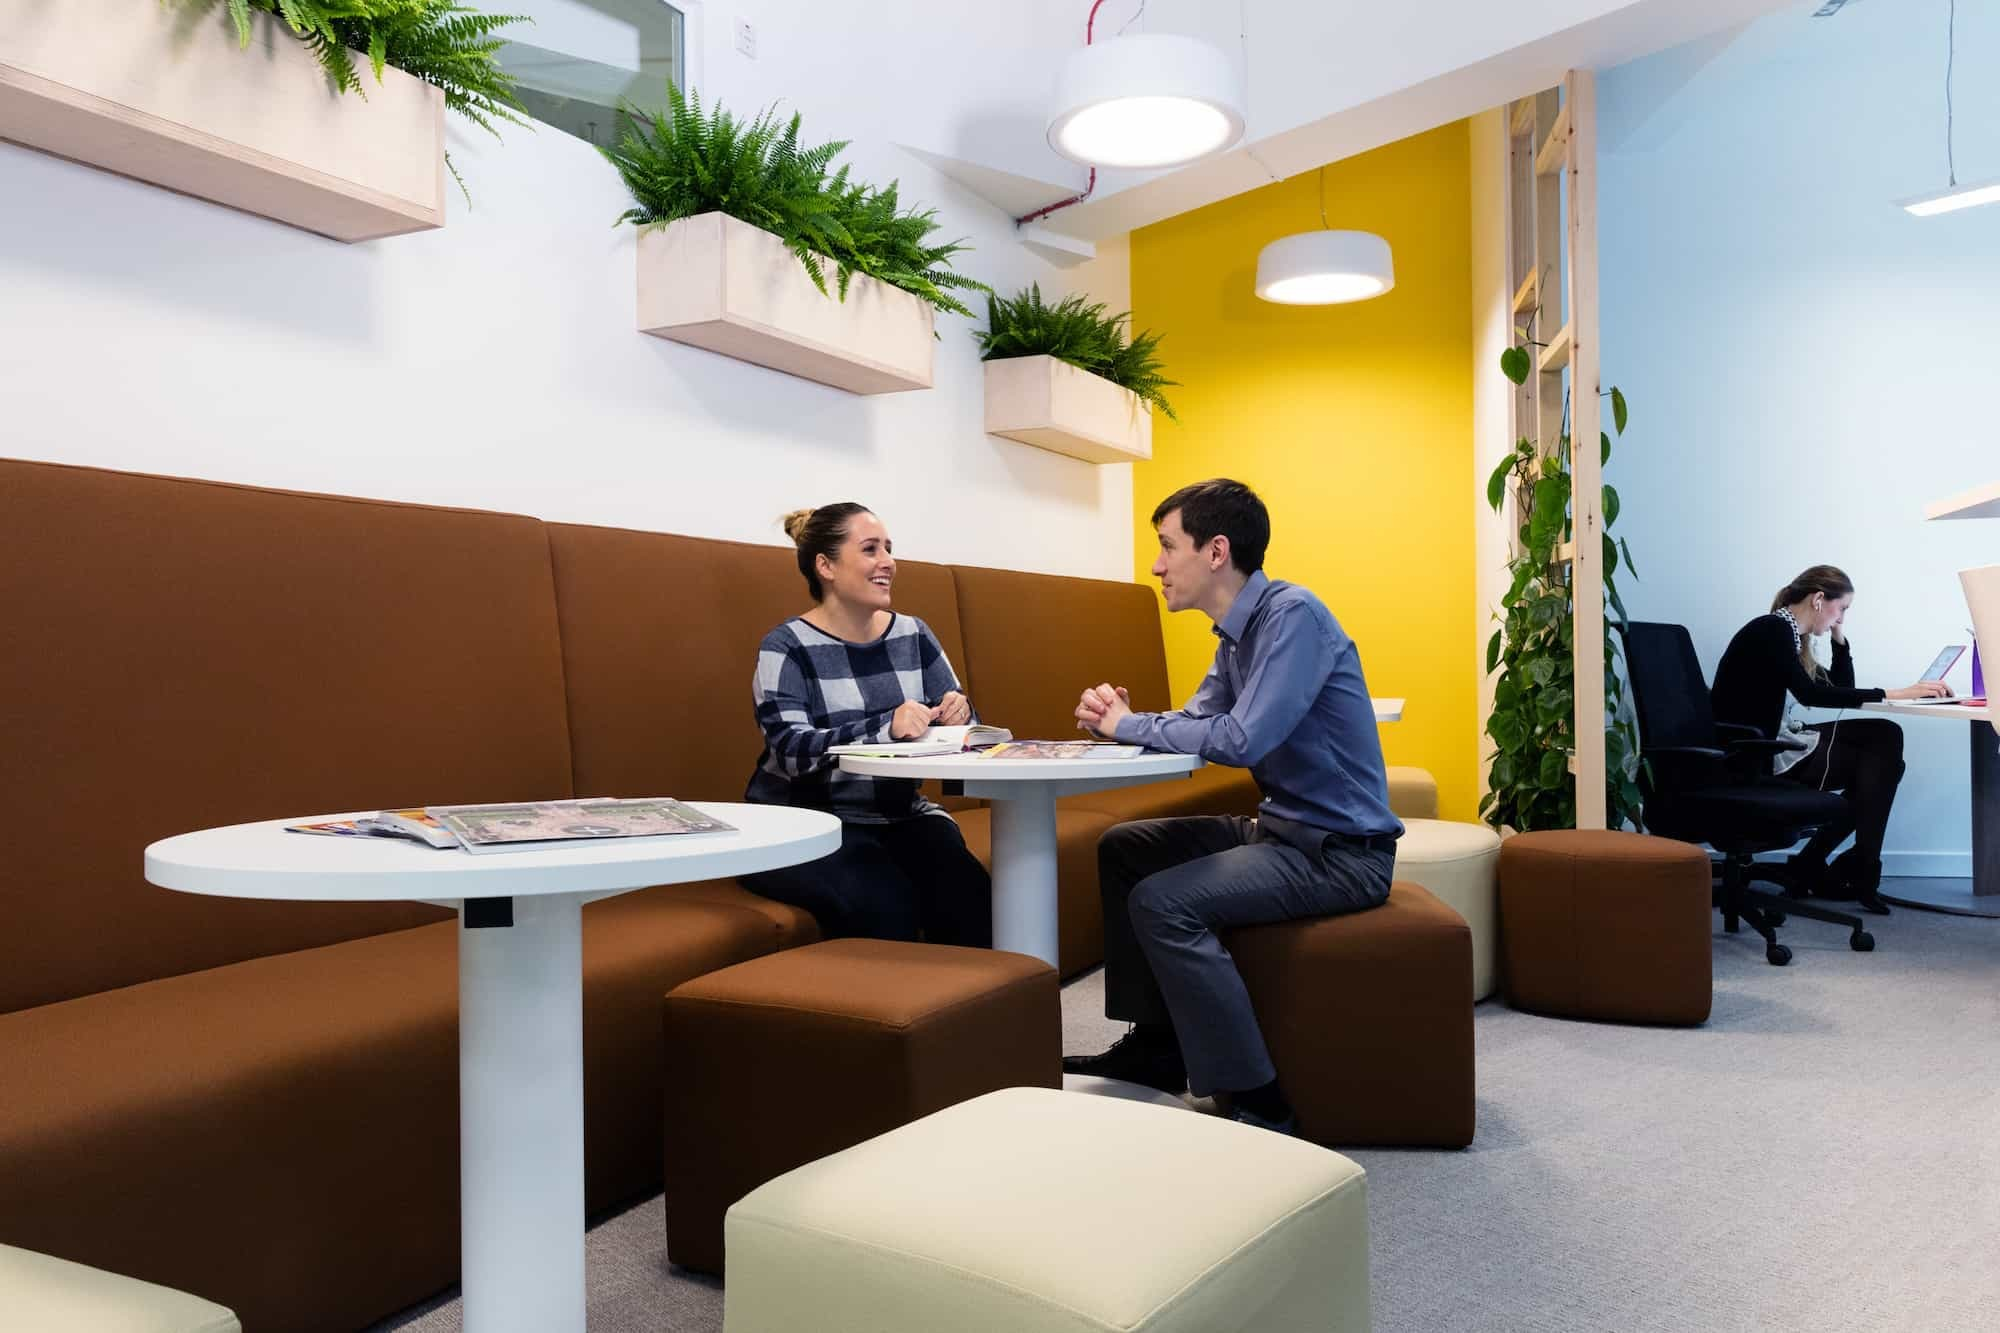 staff working in office designed for balance